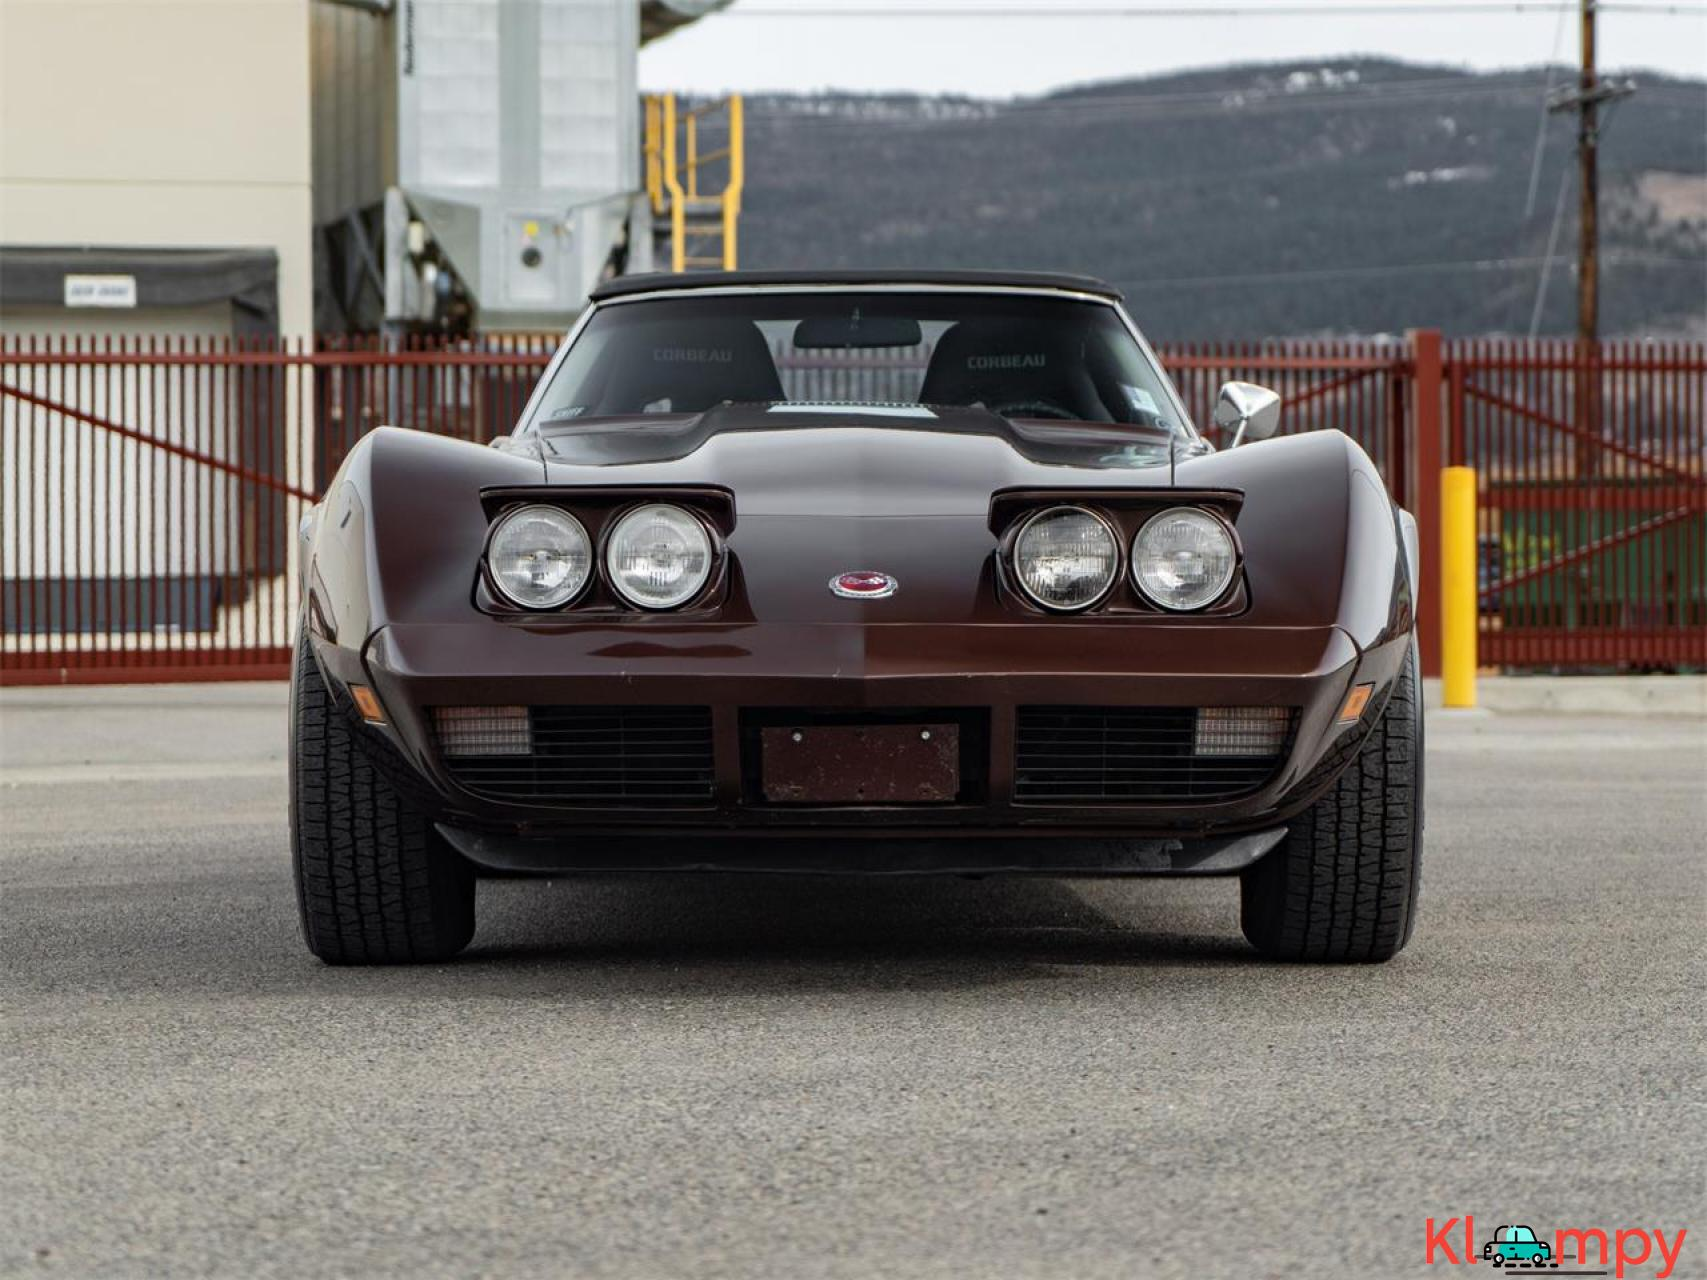 1974 Chevrolet Corvette Pheonix 350ci Crate Engine - 7/20